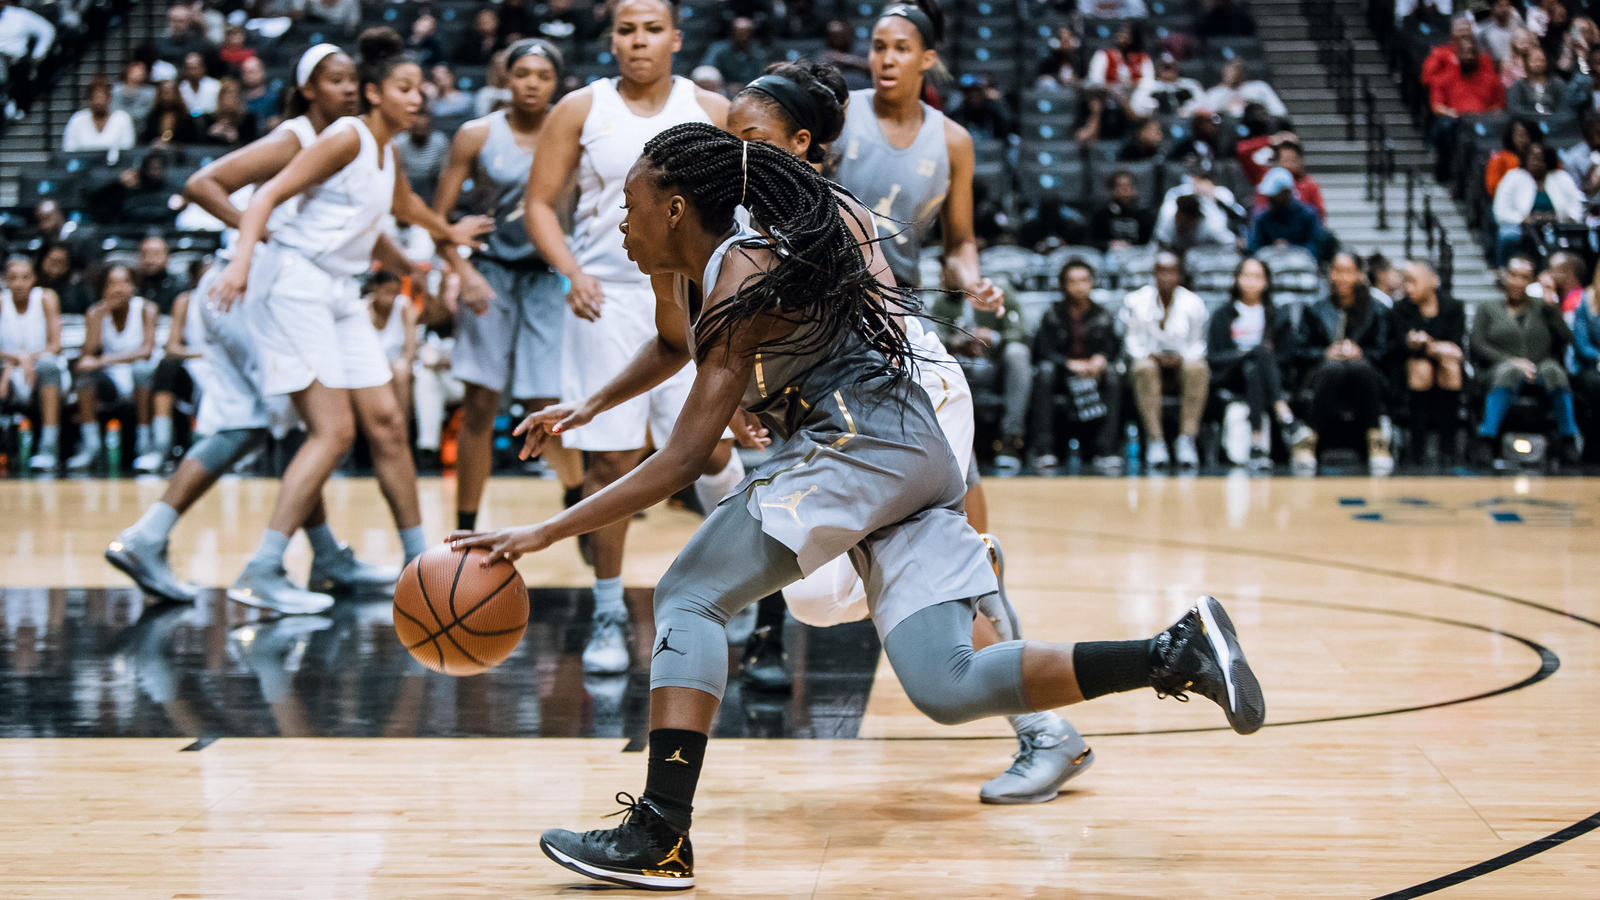 2017 JORDAN BRAND CLASSIC HOSTS NEXT GENERATION OF ELITE TALENT  2